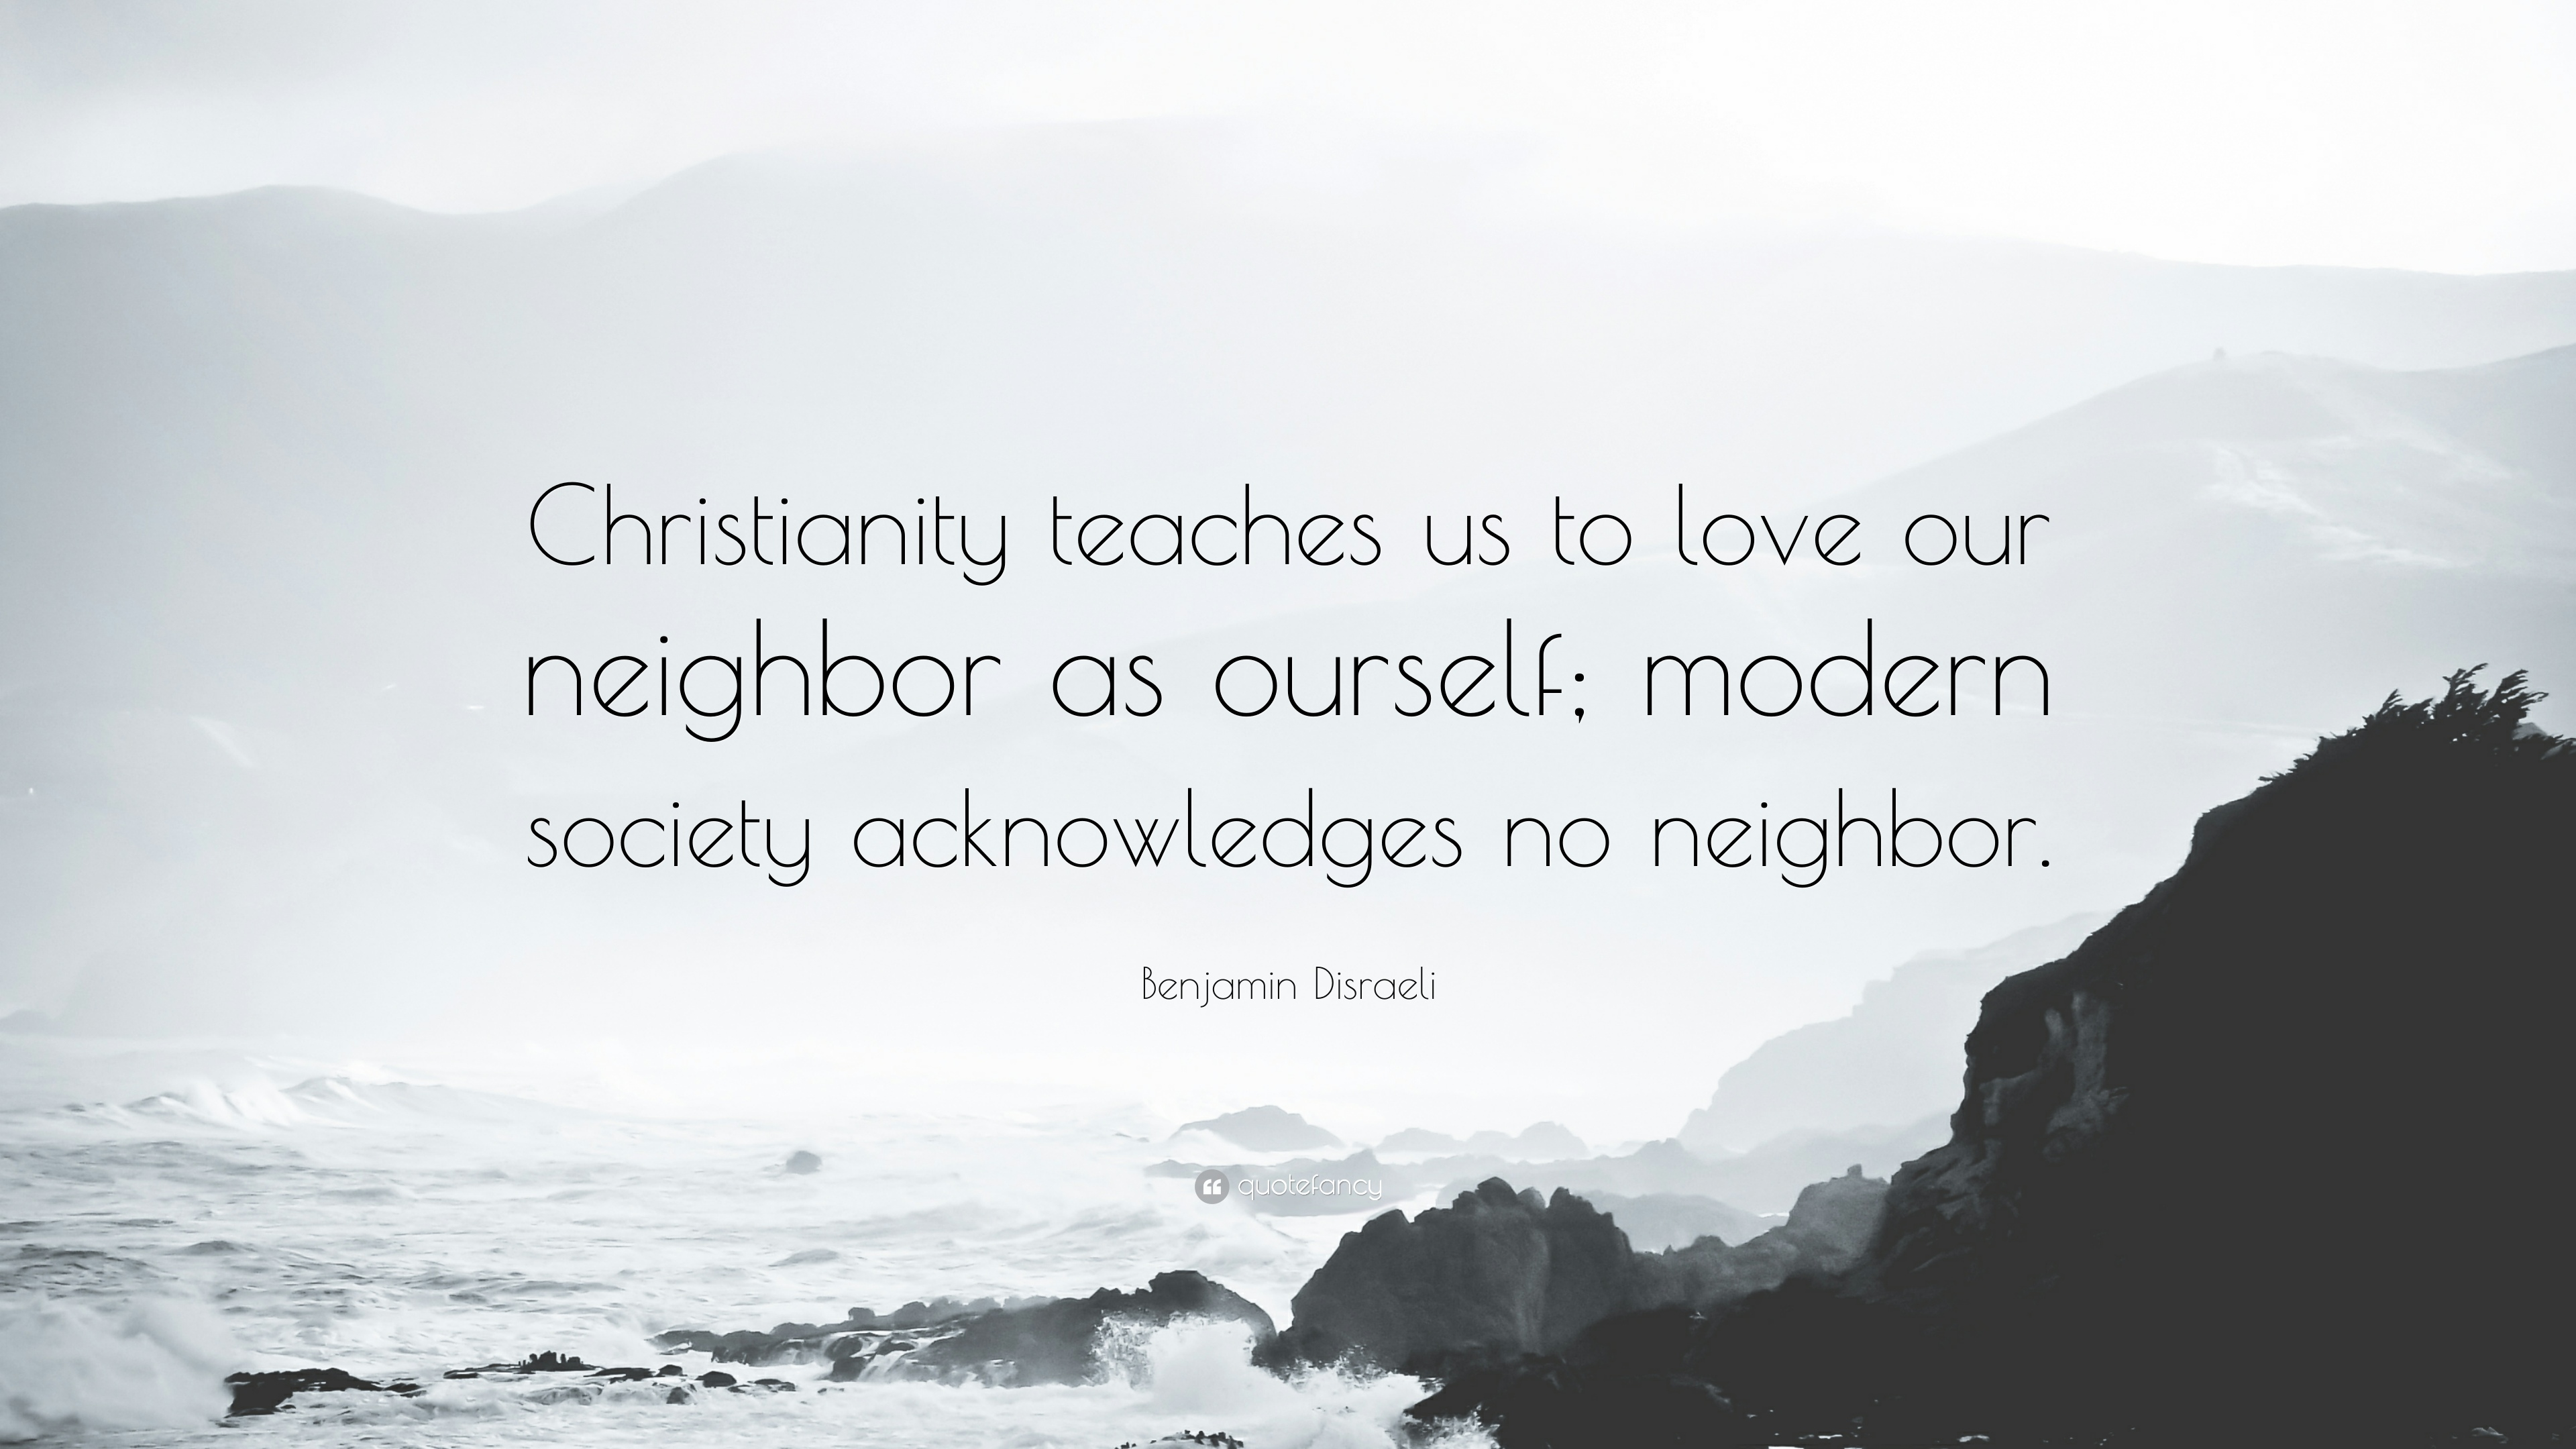 What christianity teaches